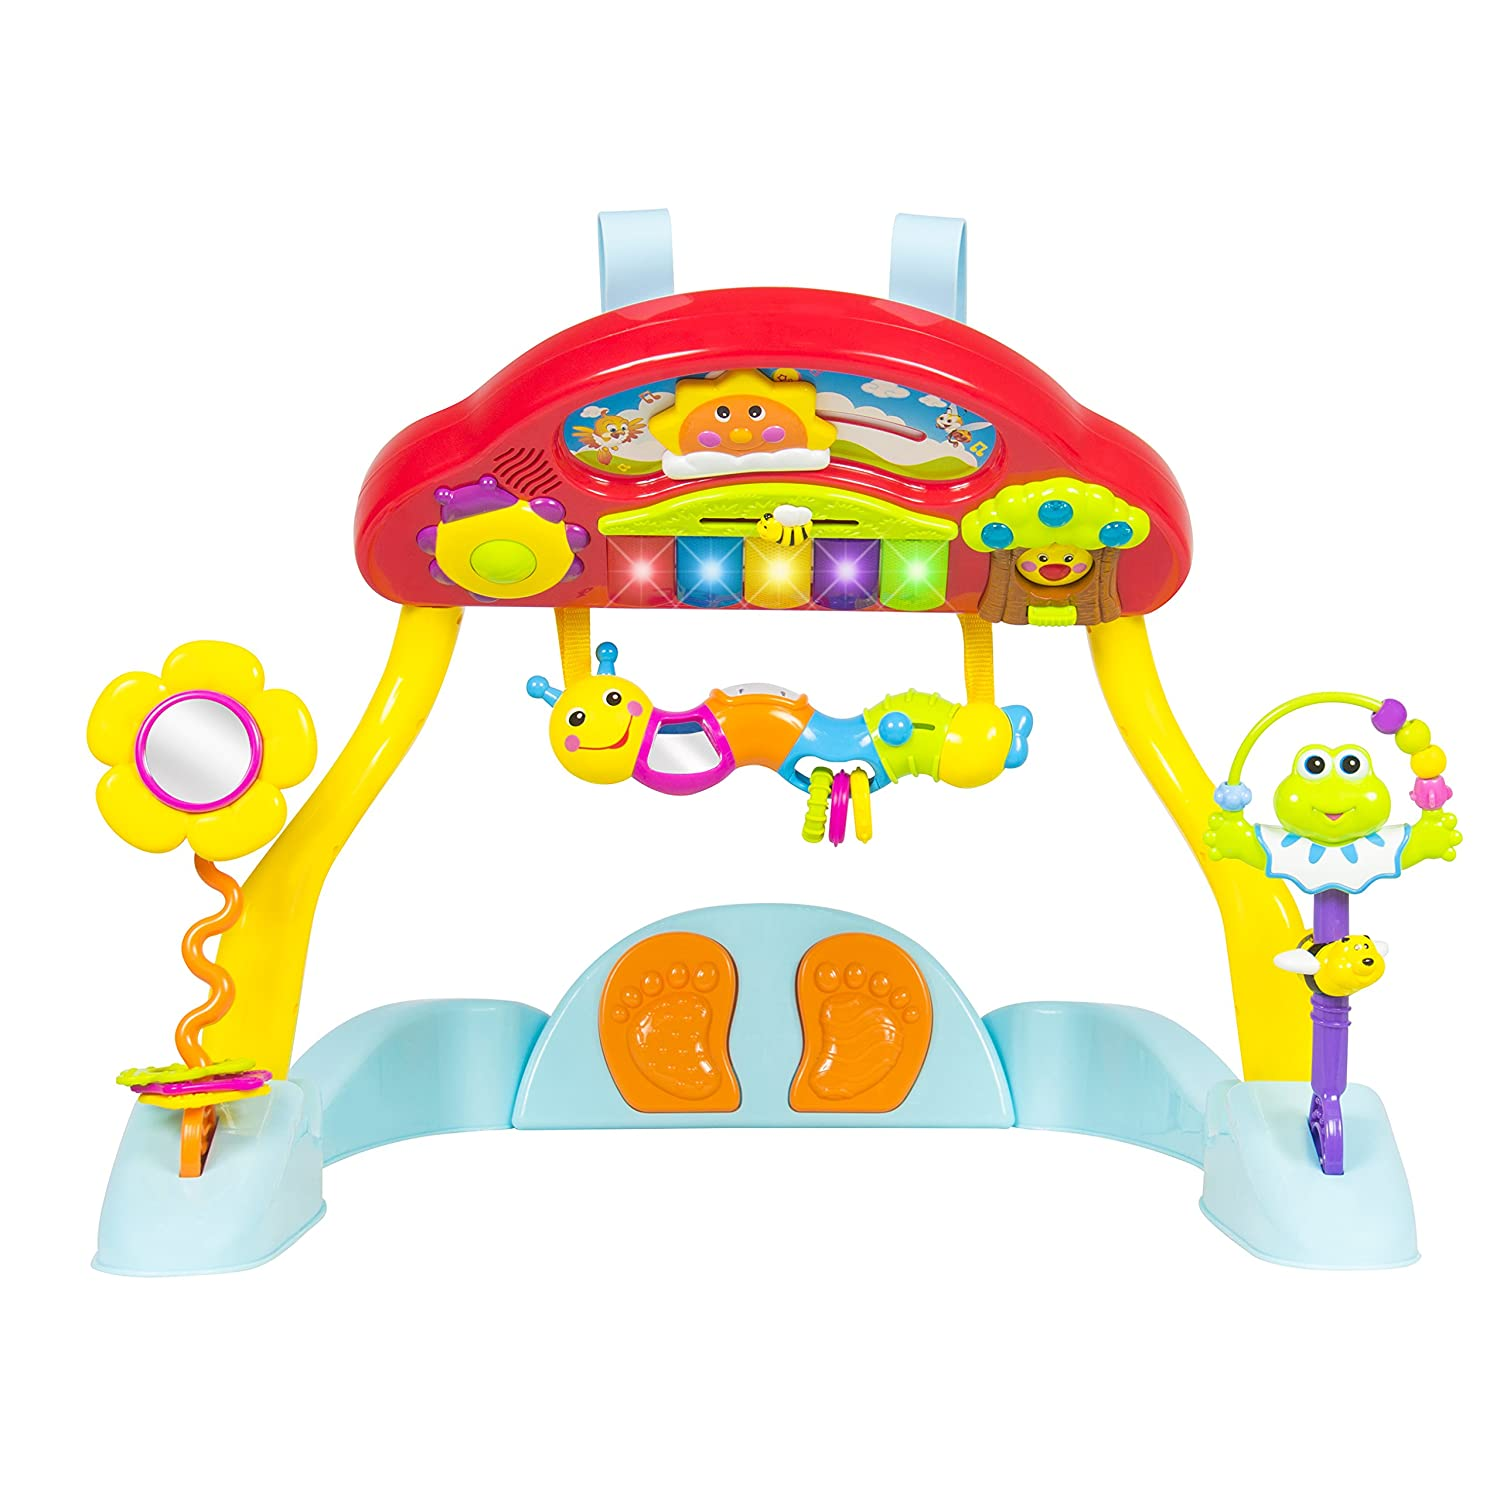 Crib gym for babies - Amazon Com Best Choice Products Deluxe Music Baby Activity Gym And Crib Soother Musical Melodious Lights Keyboard And Much More Toys Games